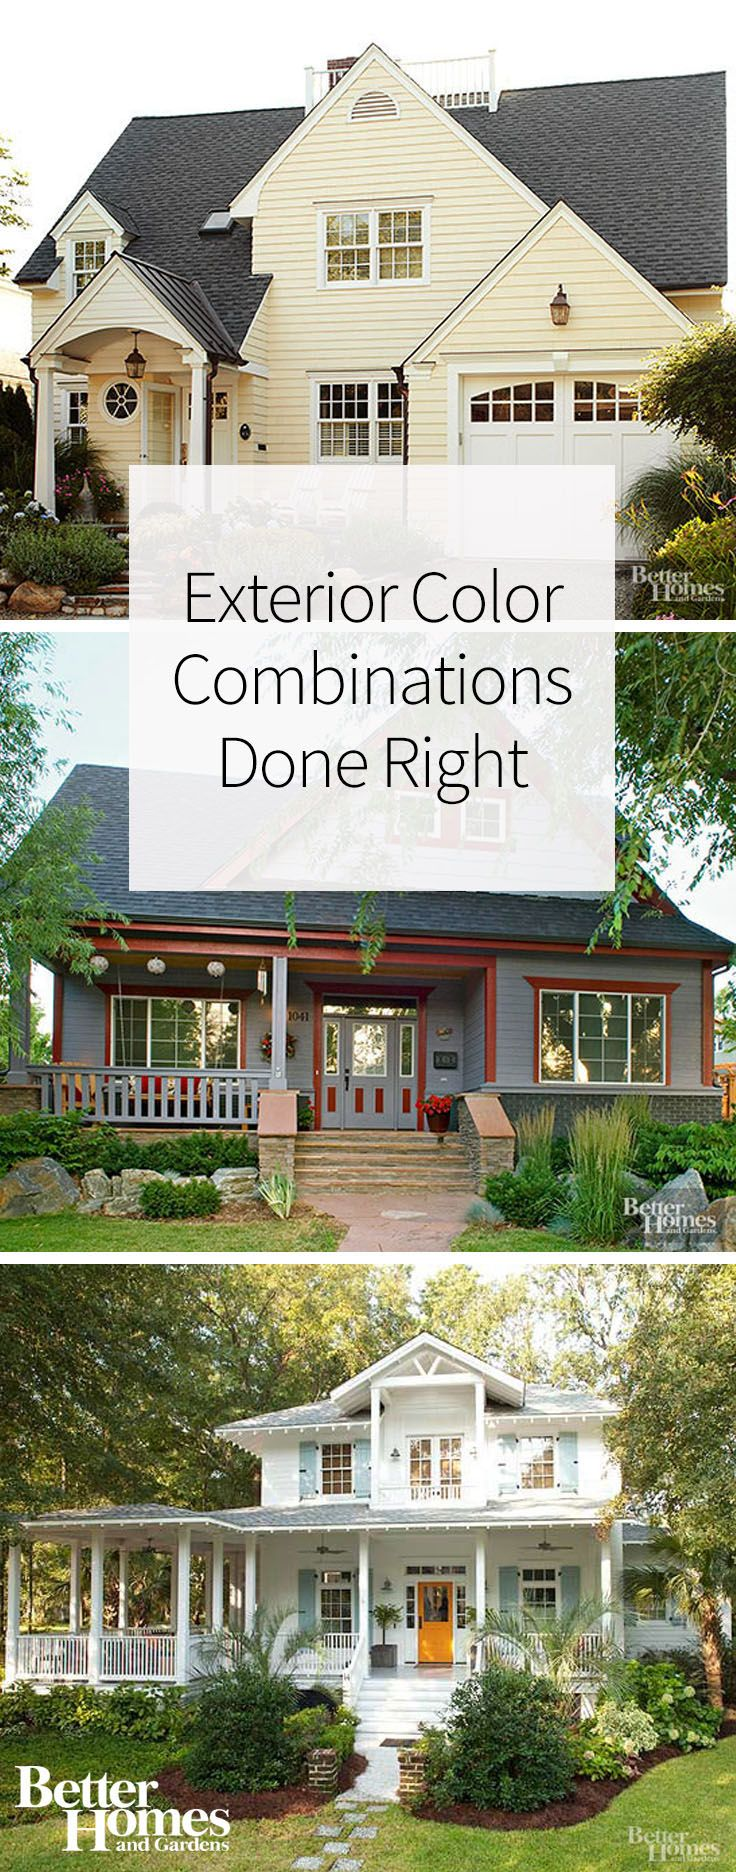 1319 best Perfect Exterior Color images on Pinterest